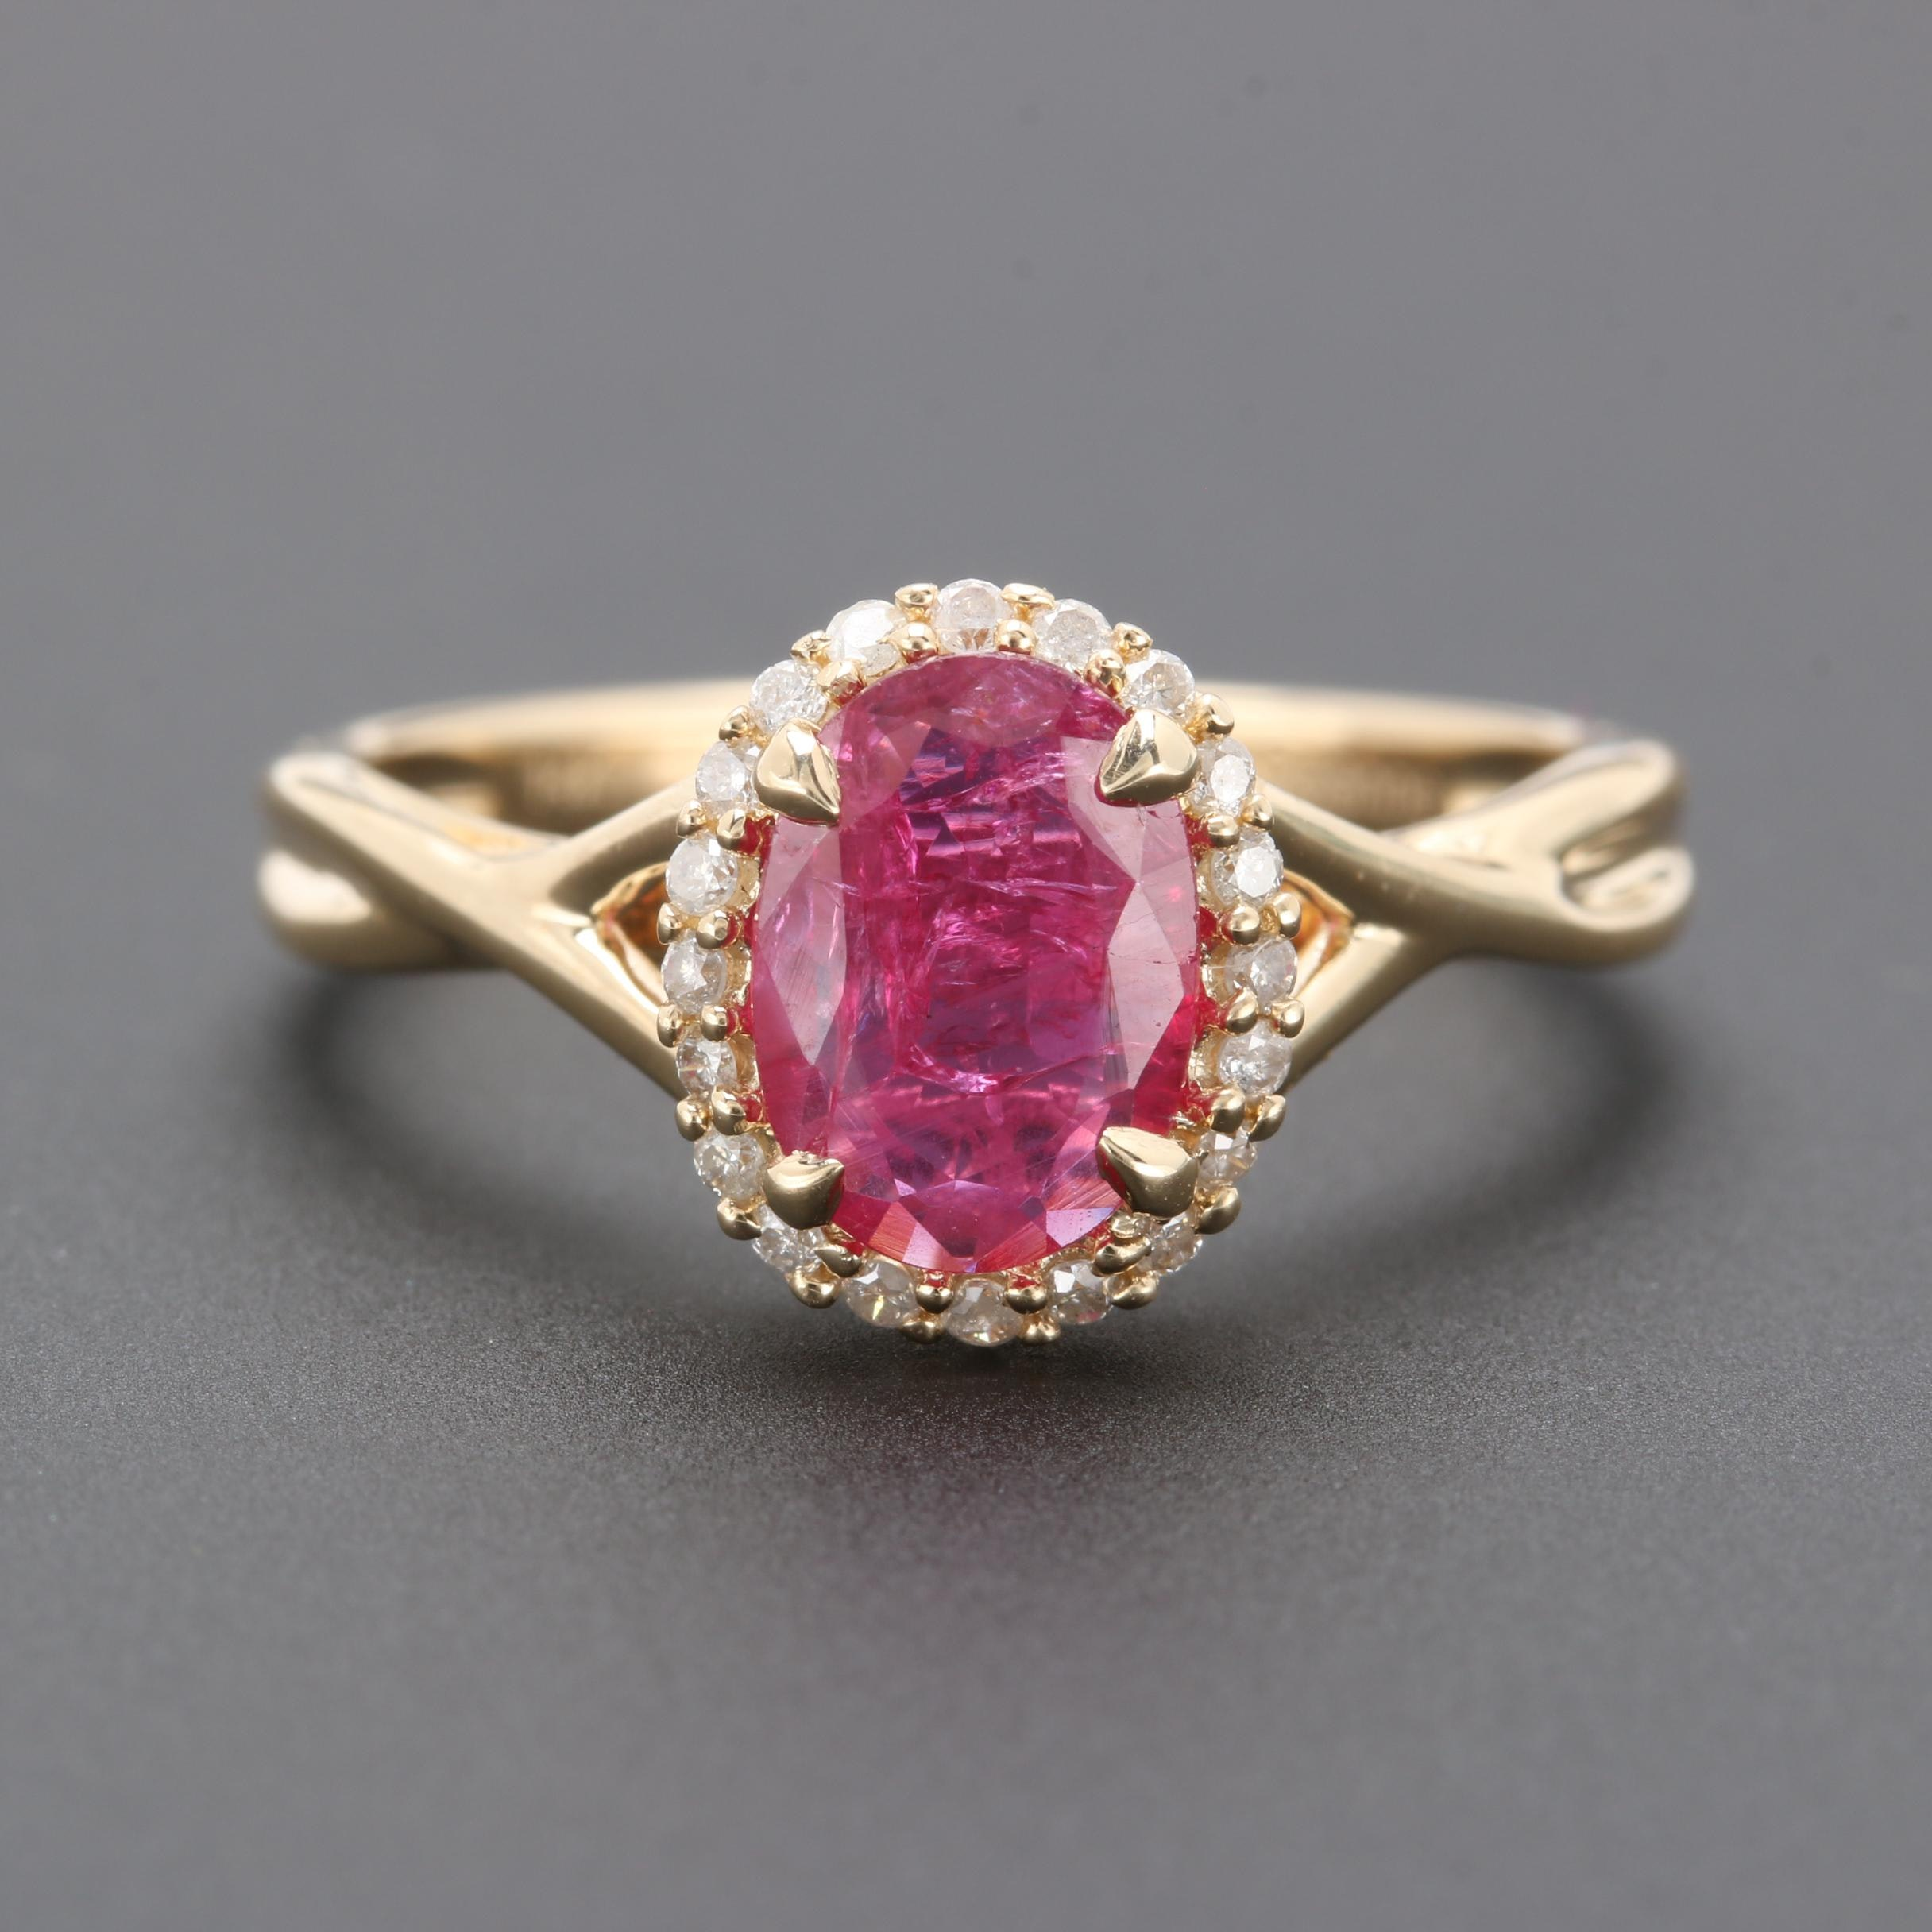 14K Yellow Gold Untreated 0.91 CT Ruby and Diamond Ring